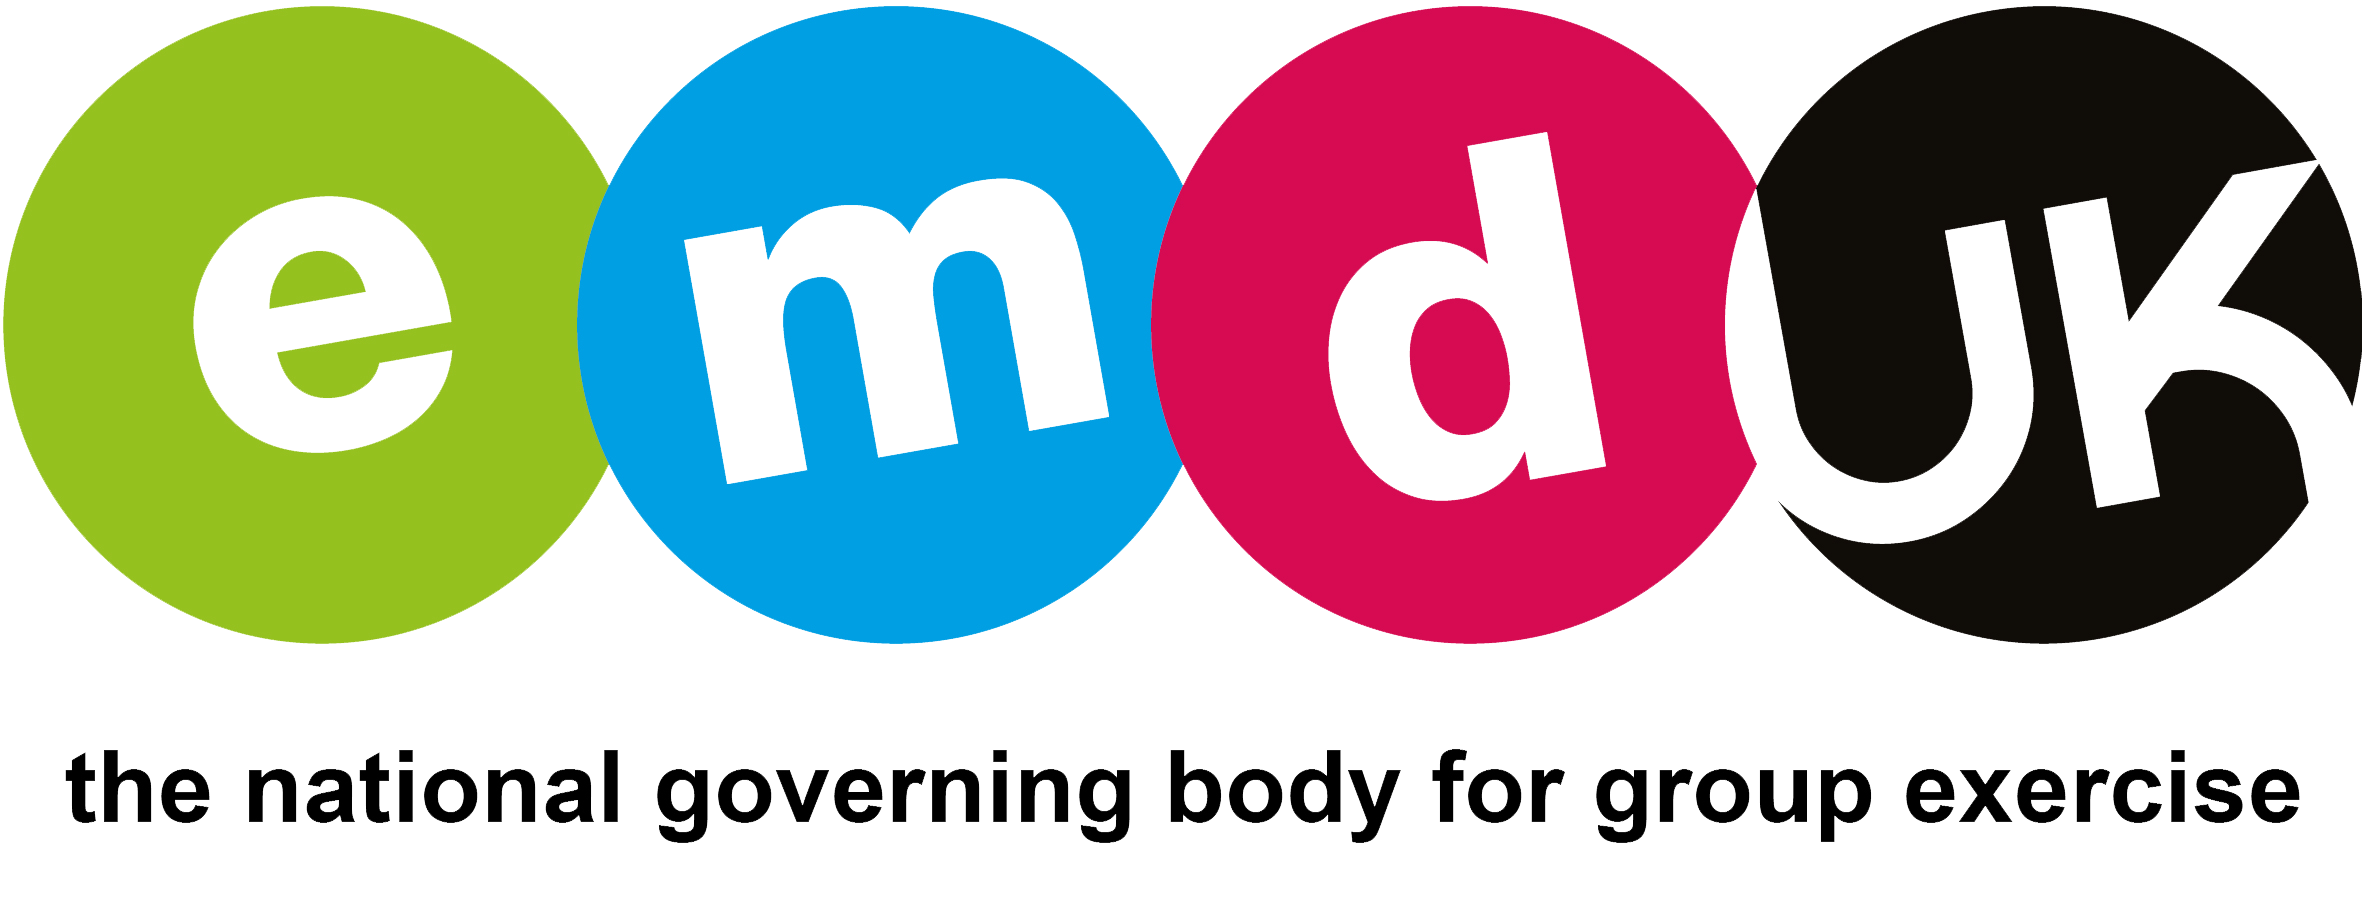 EMD UK logo transparent